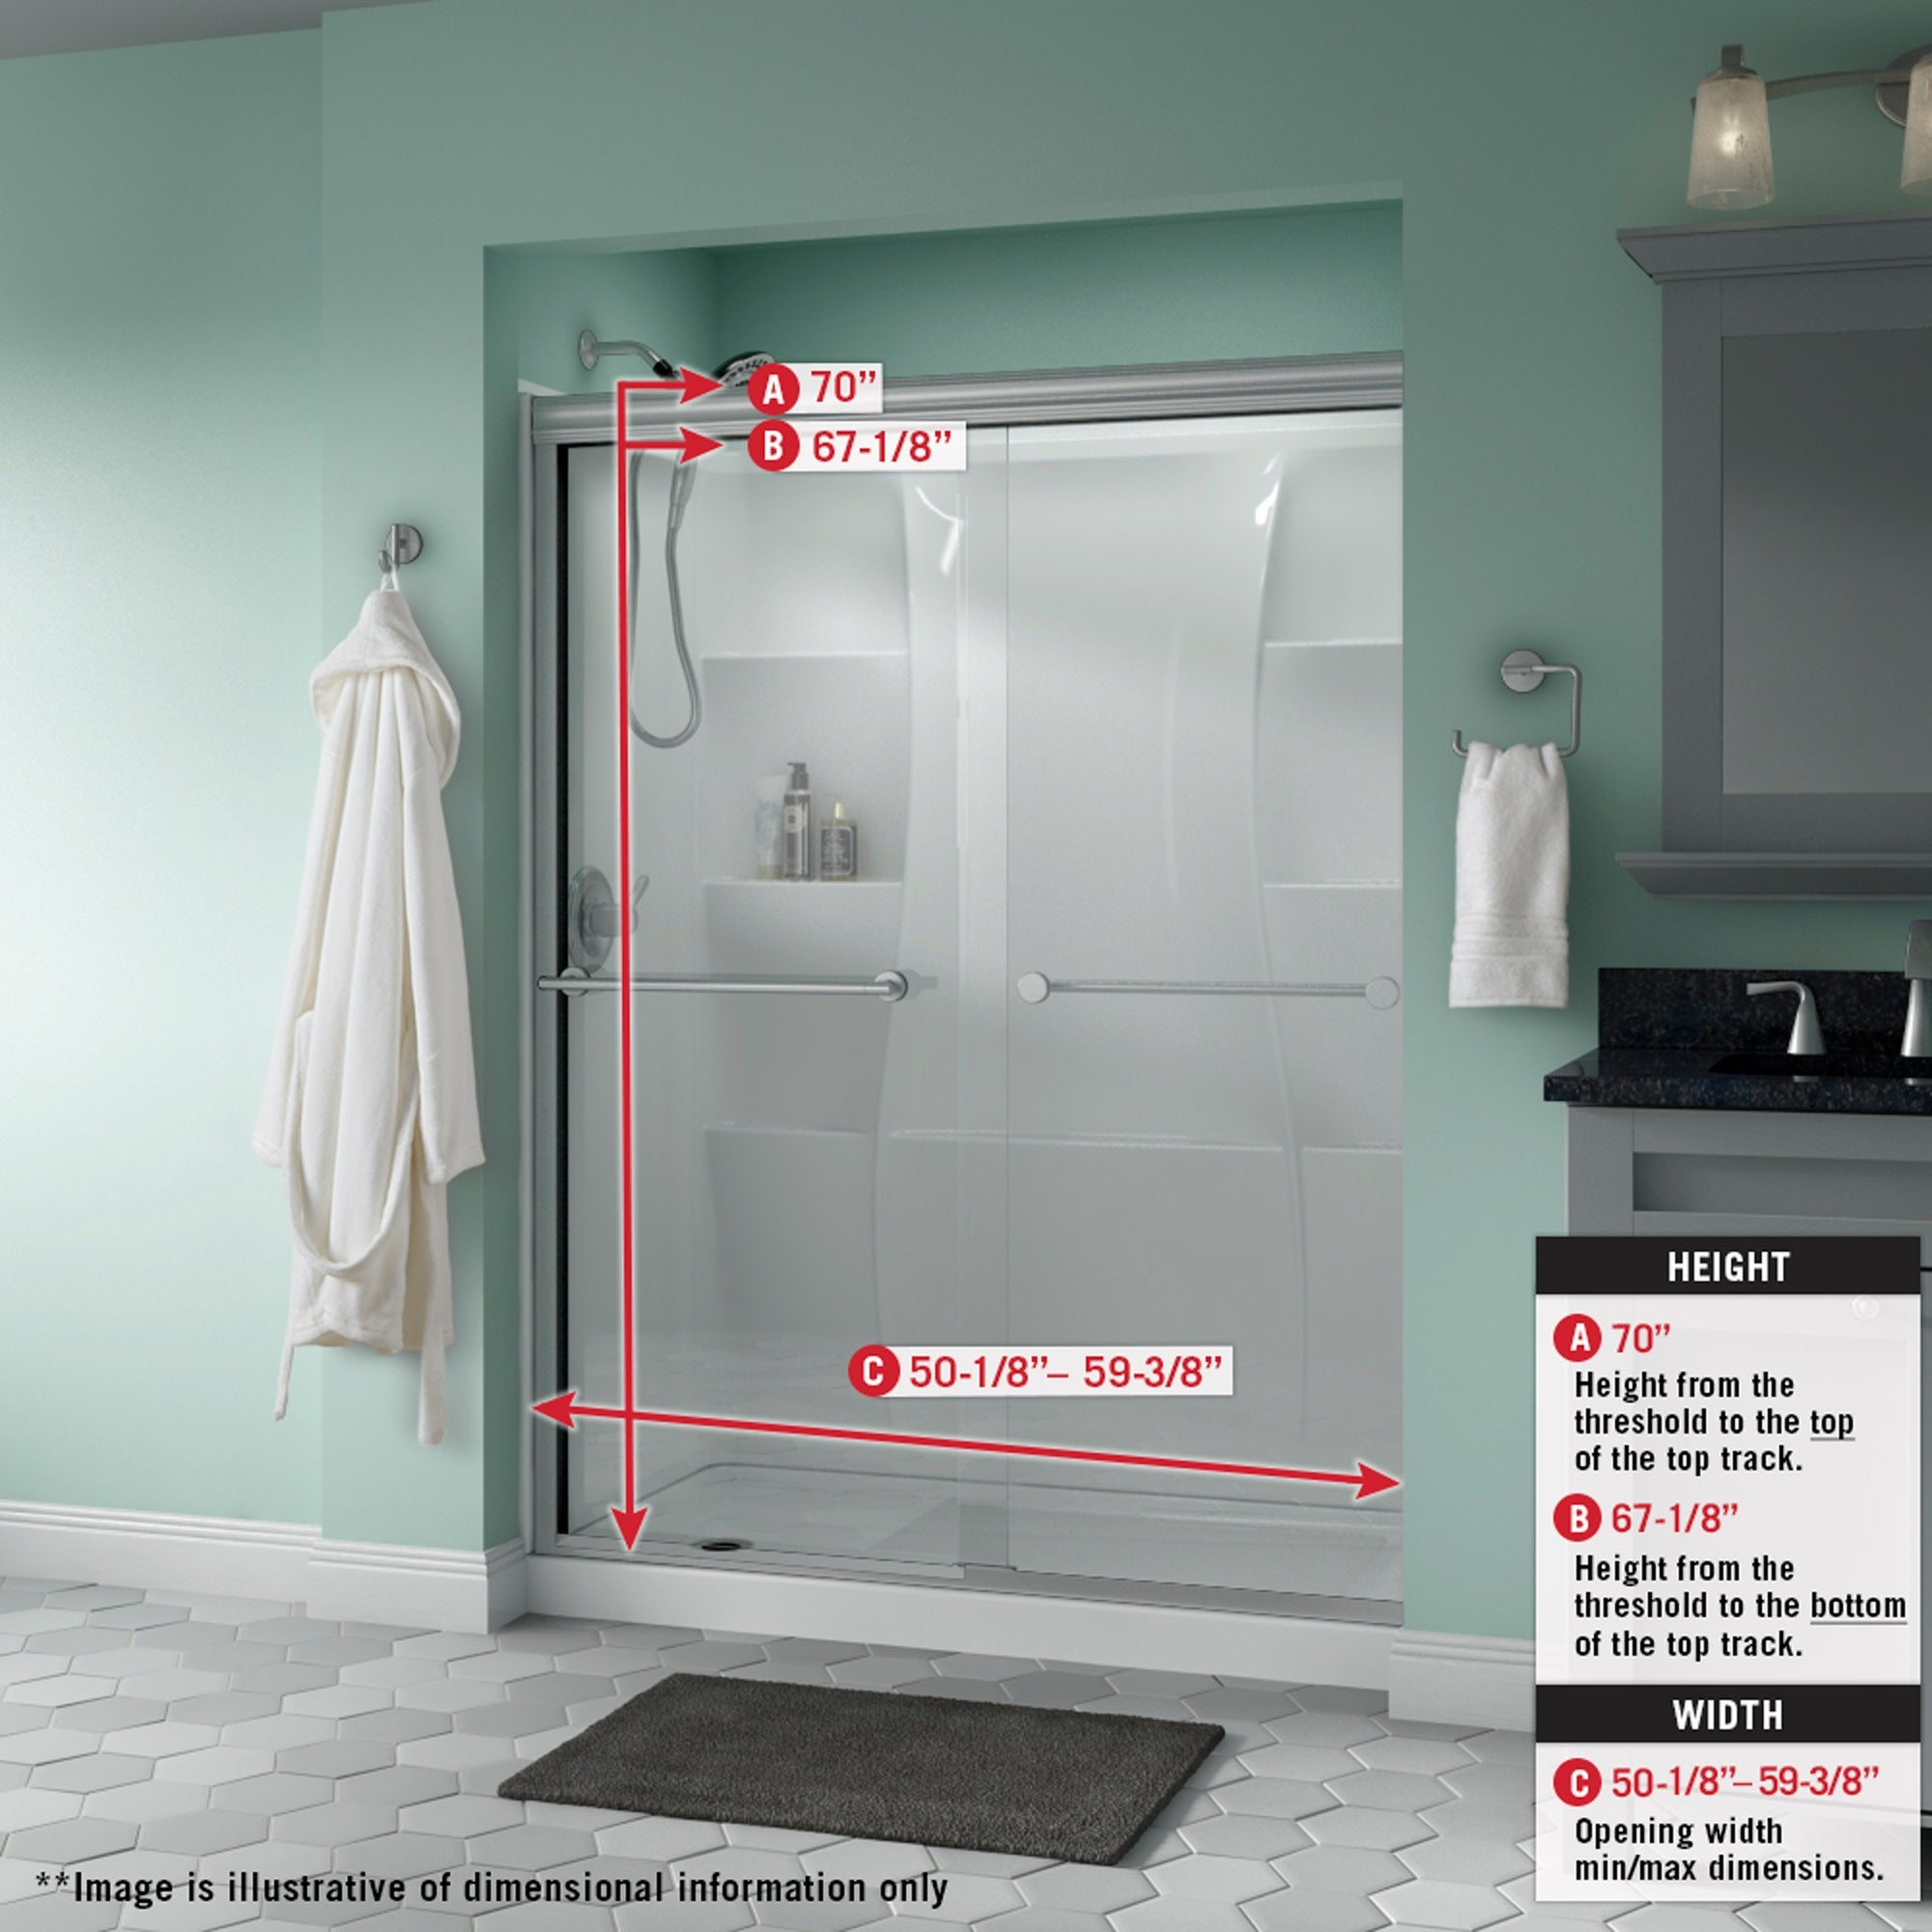 Delta Sd3172289 Trinsic 70 High X 59 3 8 Wide Sliding Semi Frameless Shower Door With Frosted Glass Chrome